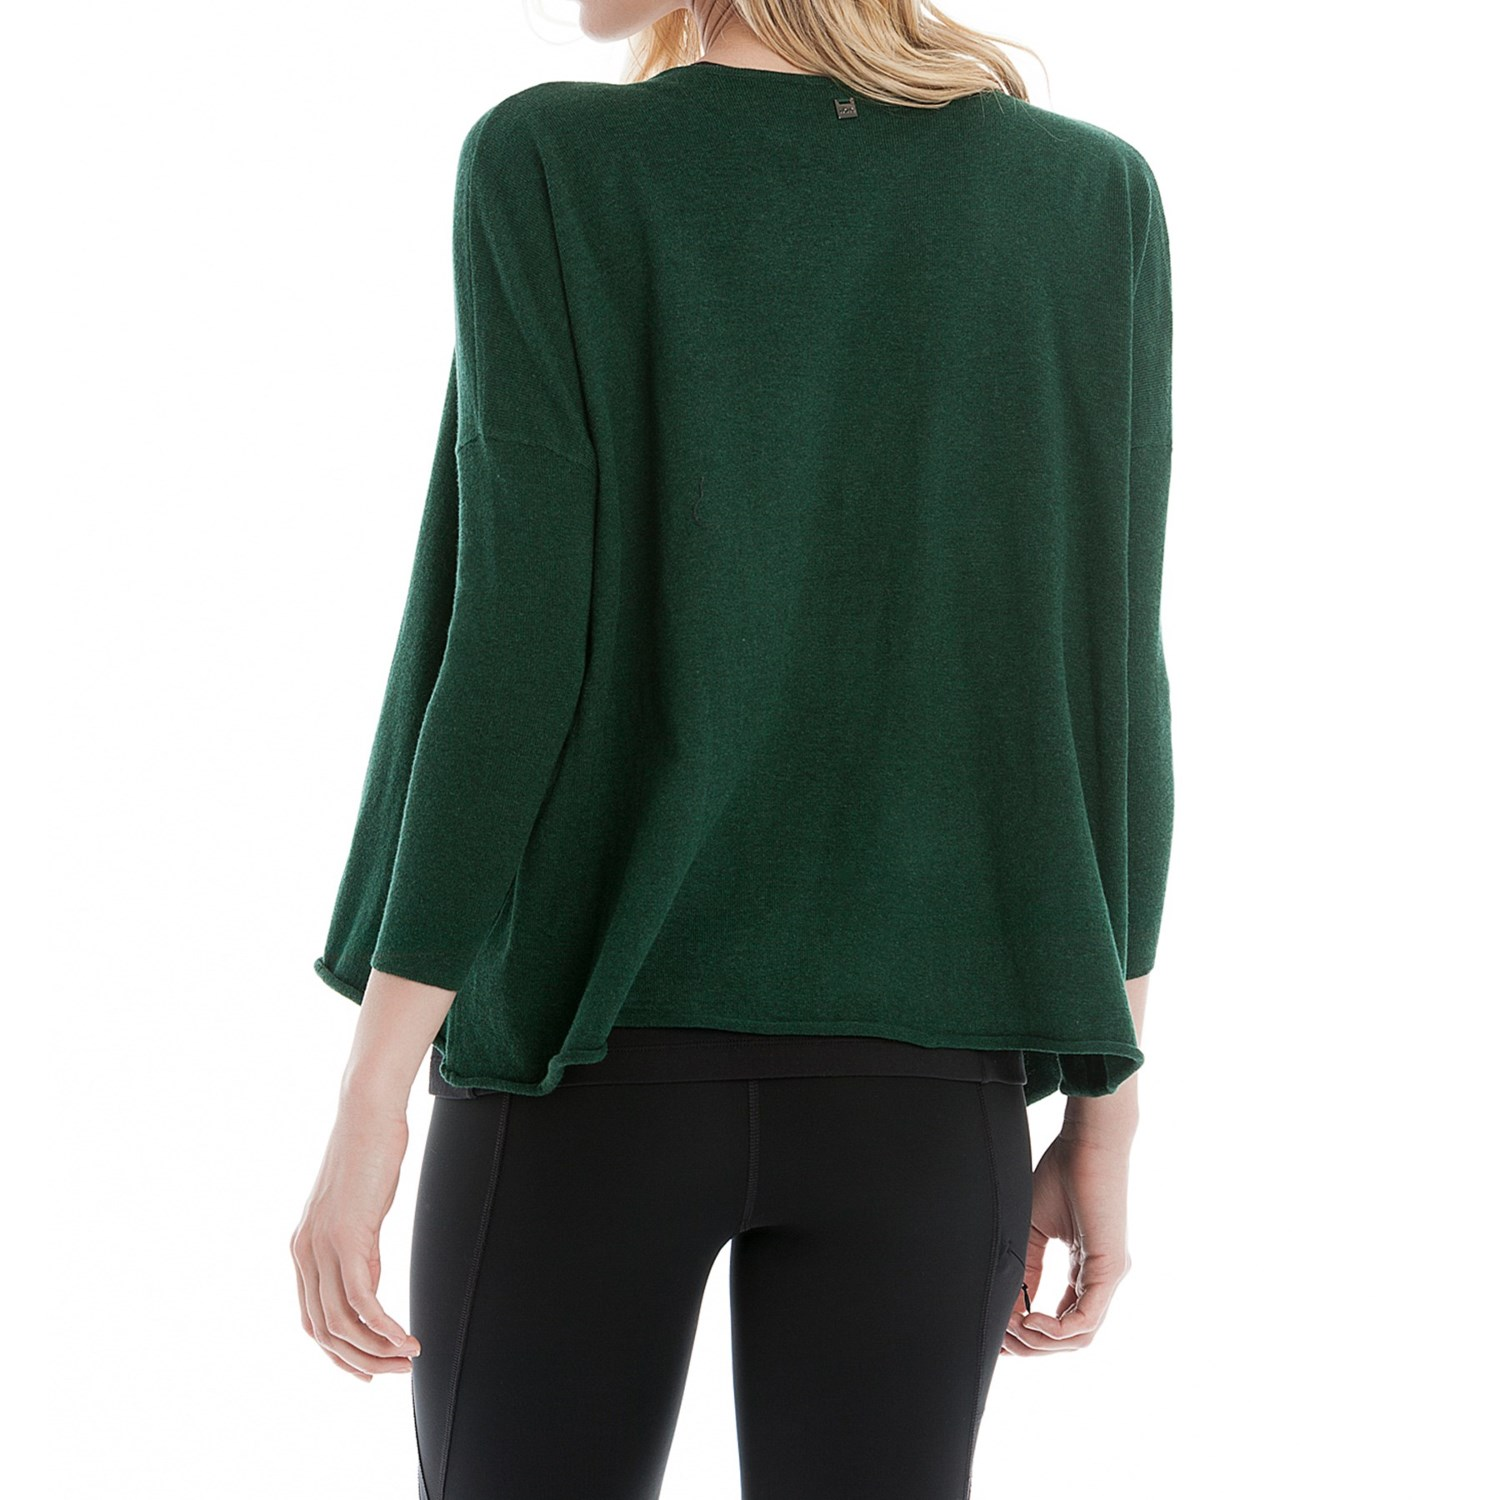 Lole Murielle Draped Cardigan Sweater (For Women) - Save 51%